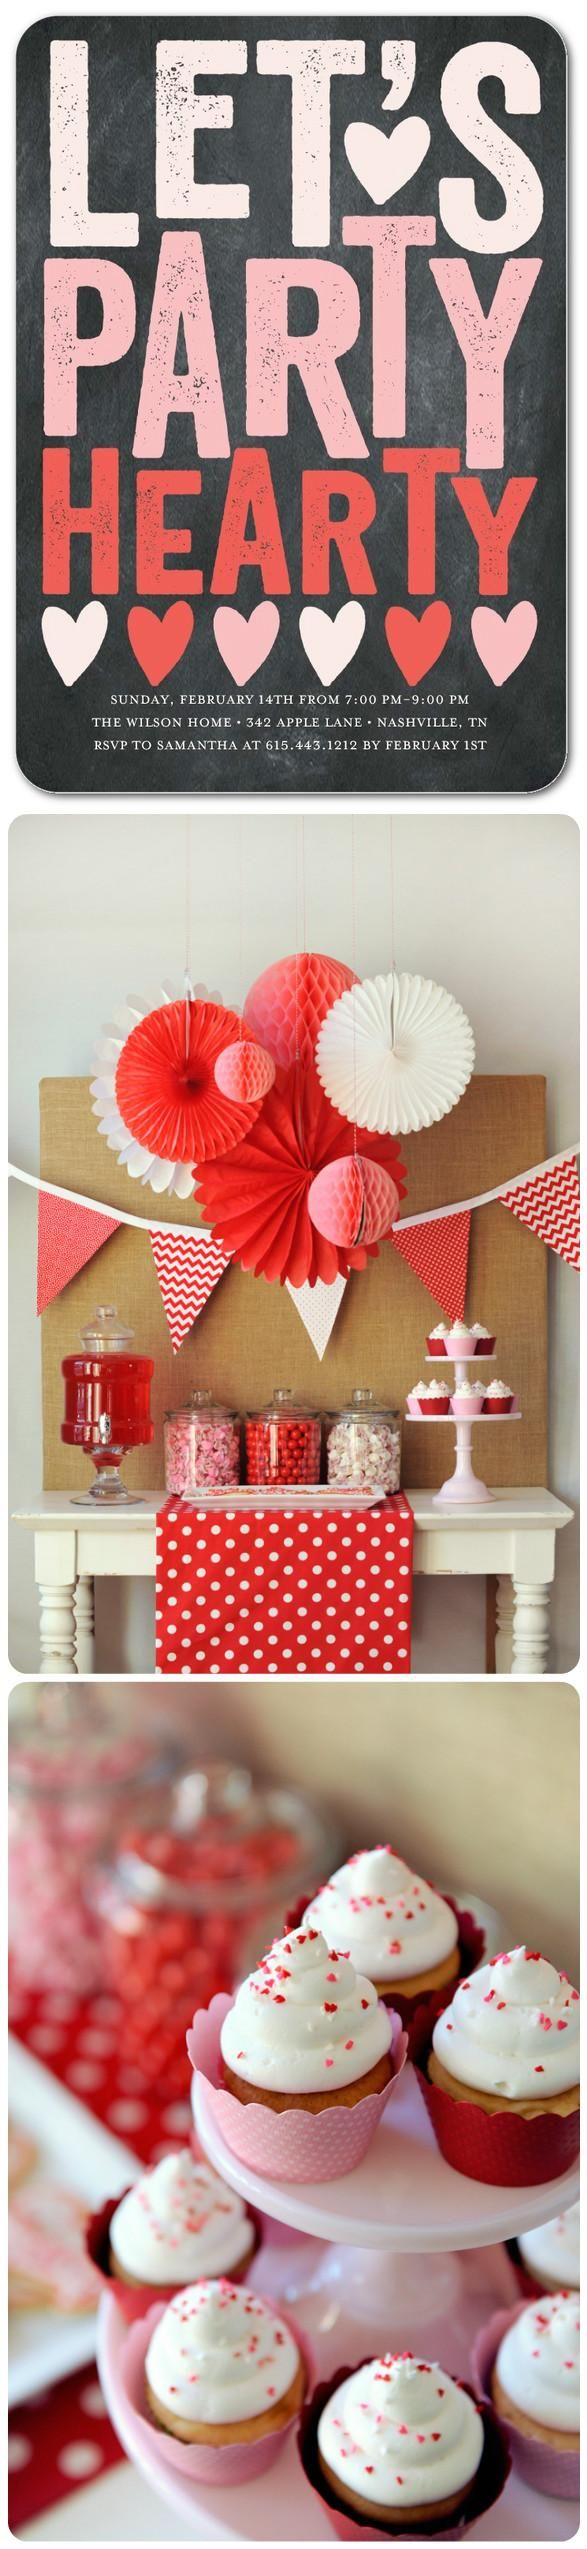 Be My Valentine Party Ideas | Themed parties, Creative party ideas ...